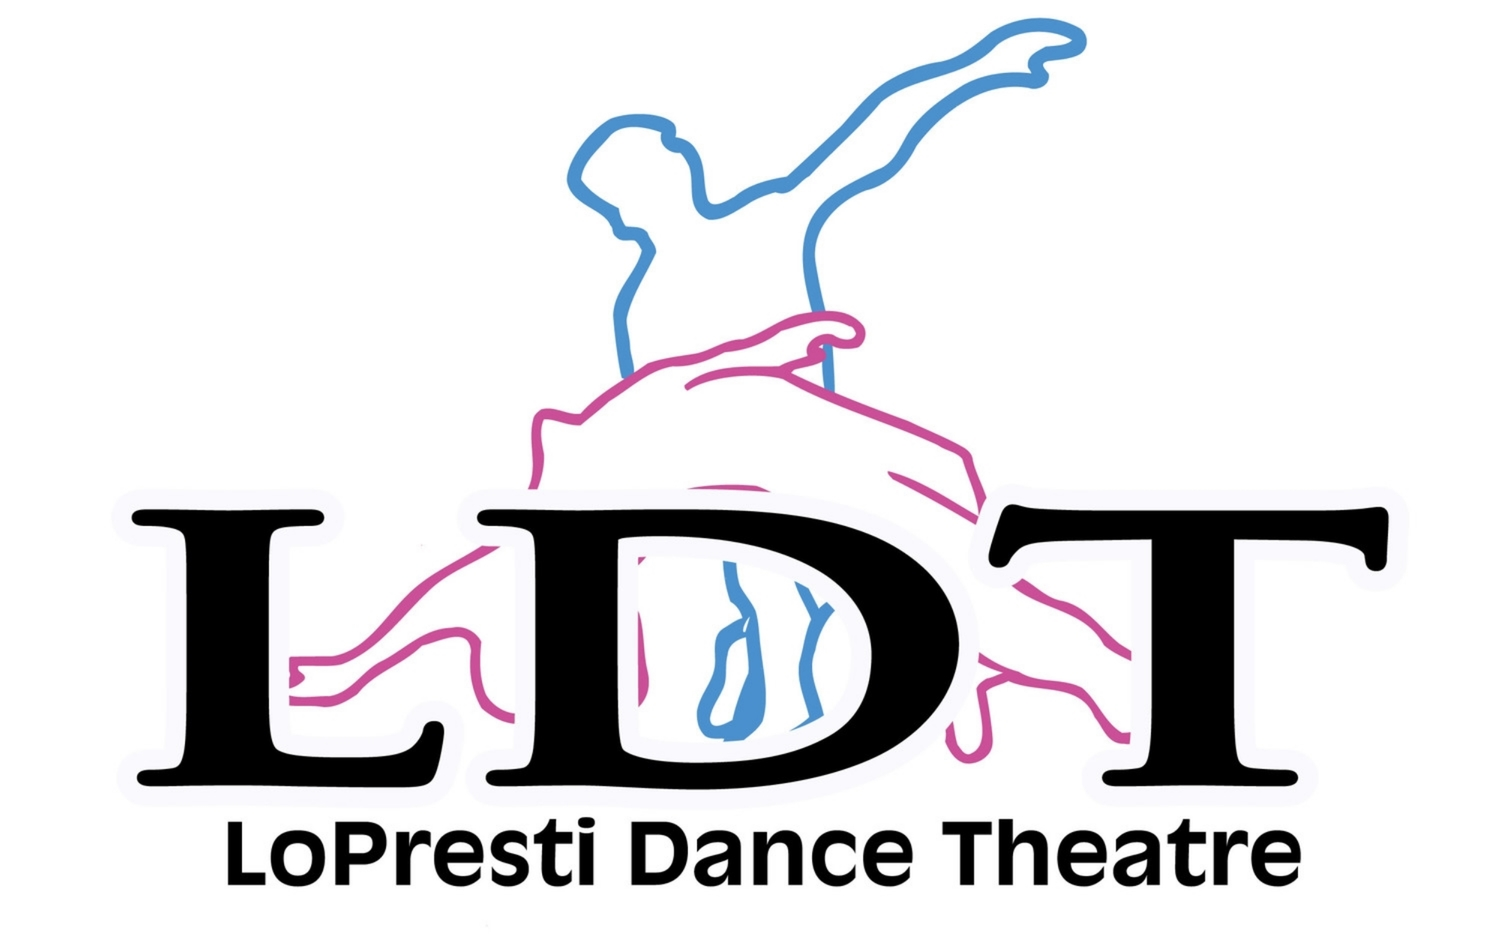 LoPresti Dance Theatre